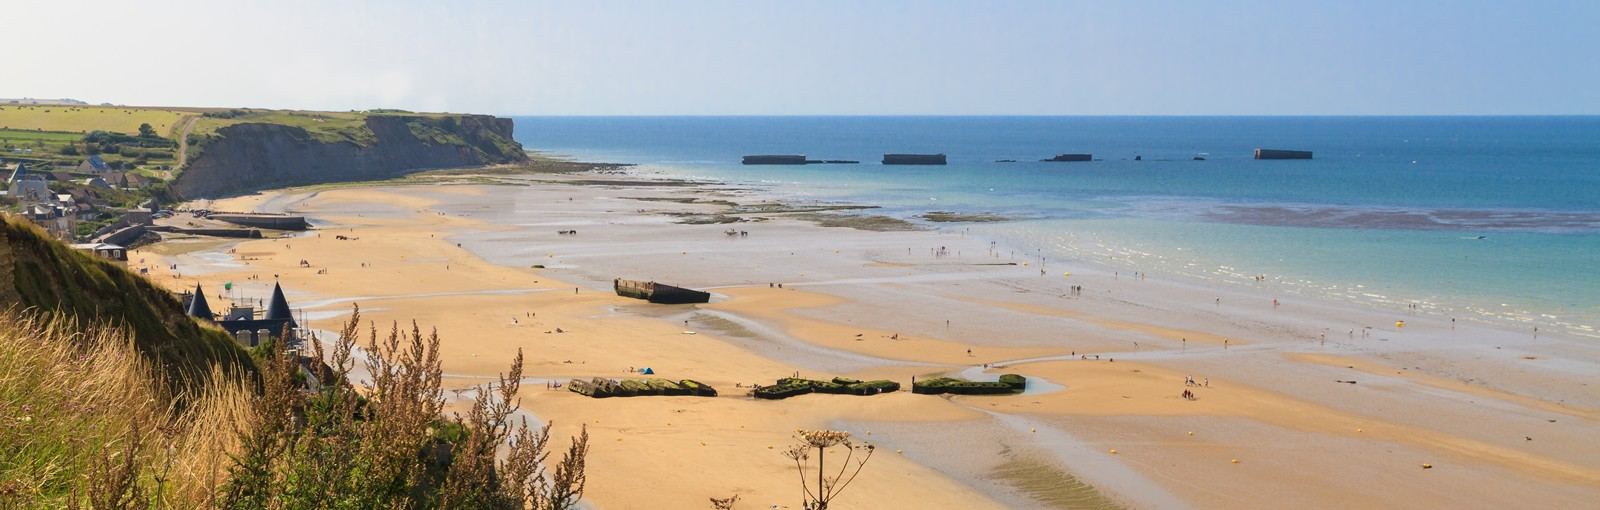 Tours The 'D.Day' Landing Beaches - Full days - Day tours from Paris